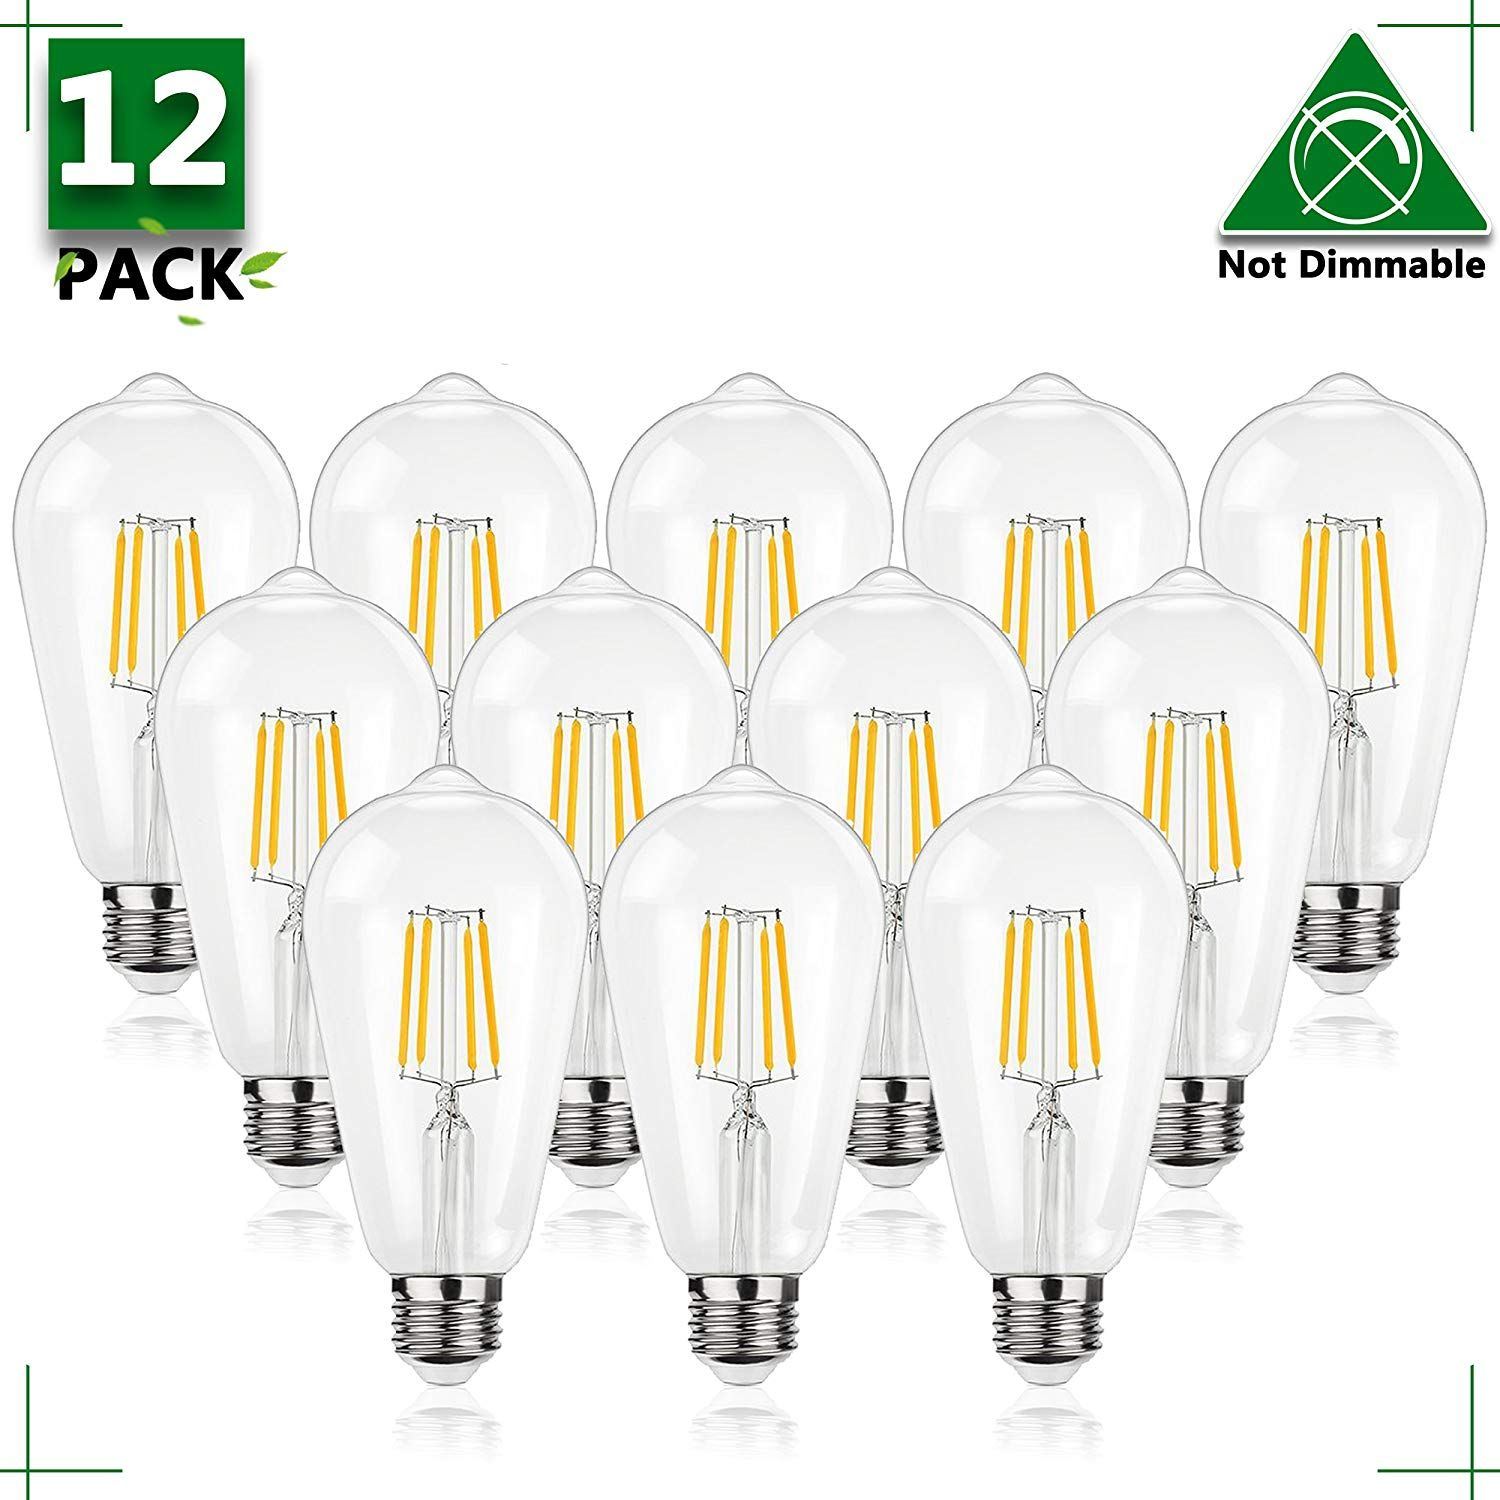 St64 Vintage Edison Filament Light Bulb 4 Watt 40 Watt Equivalent Not Dimmable E26 Base Bulb 2700k Soft White 120 Led Bulb Filament Bulb Lighting Light Bulb